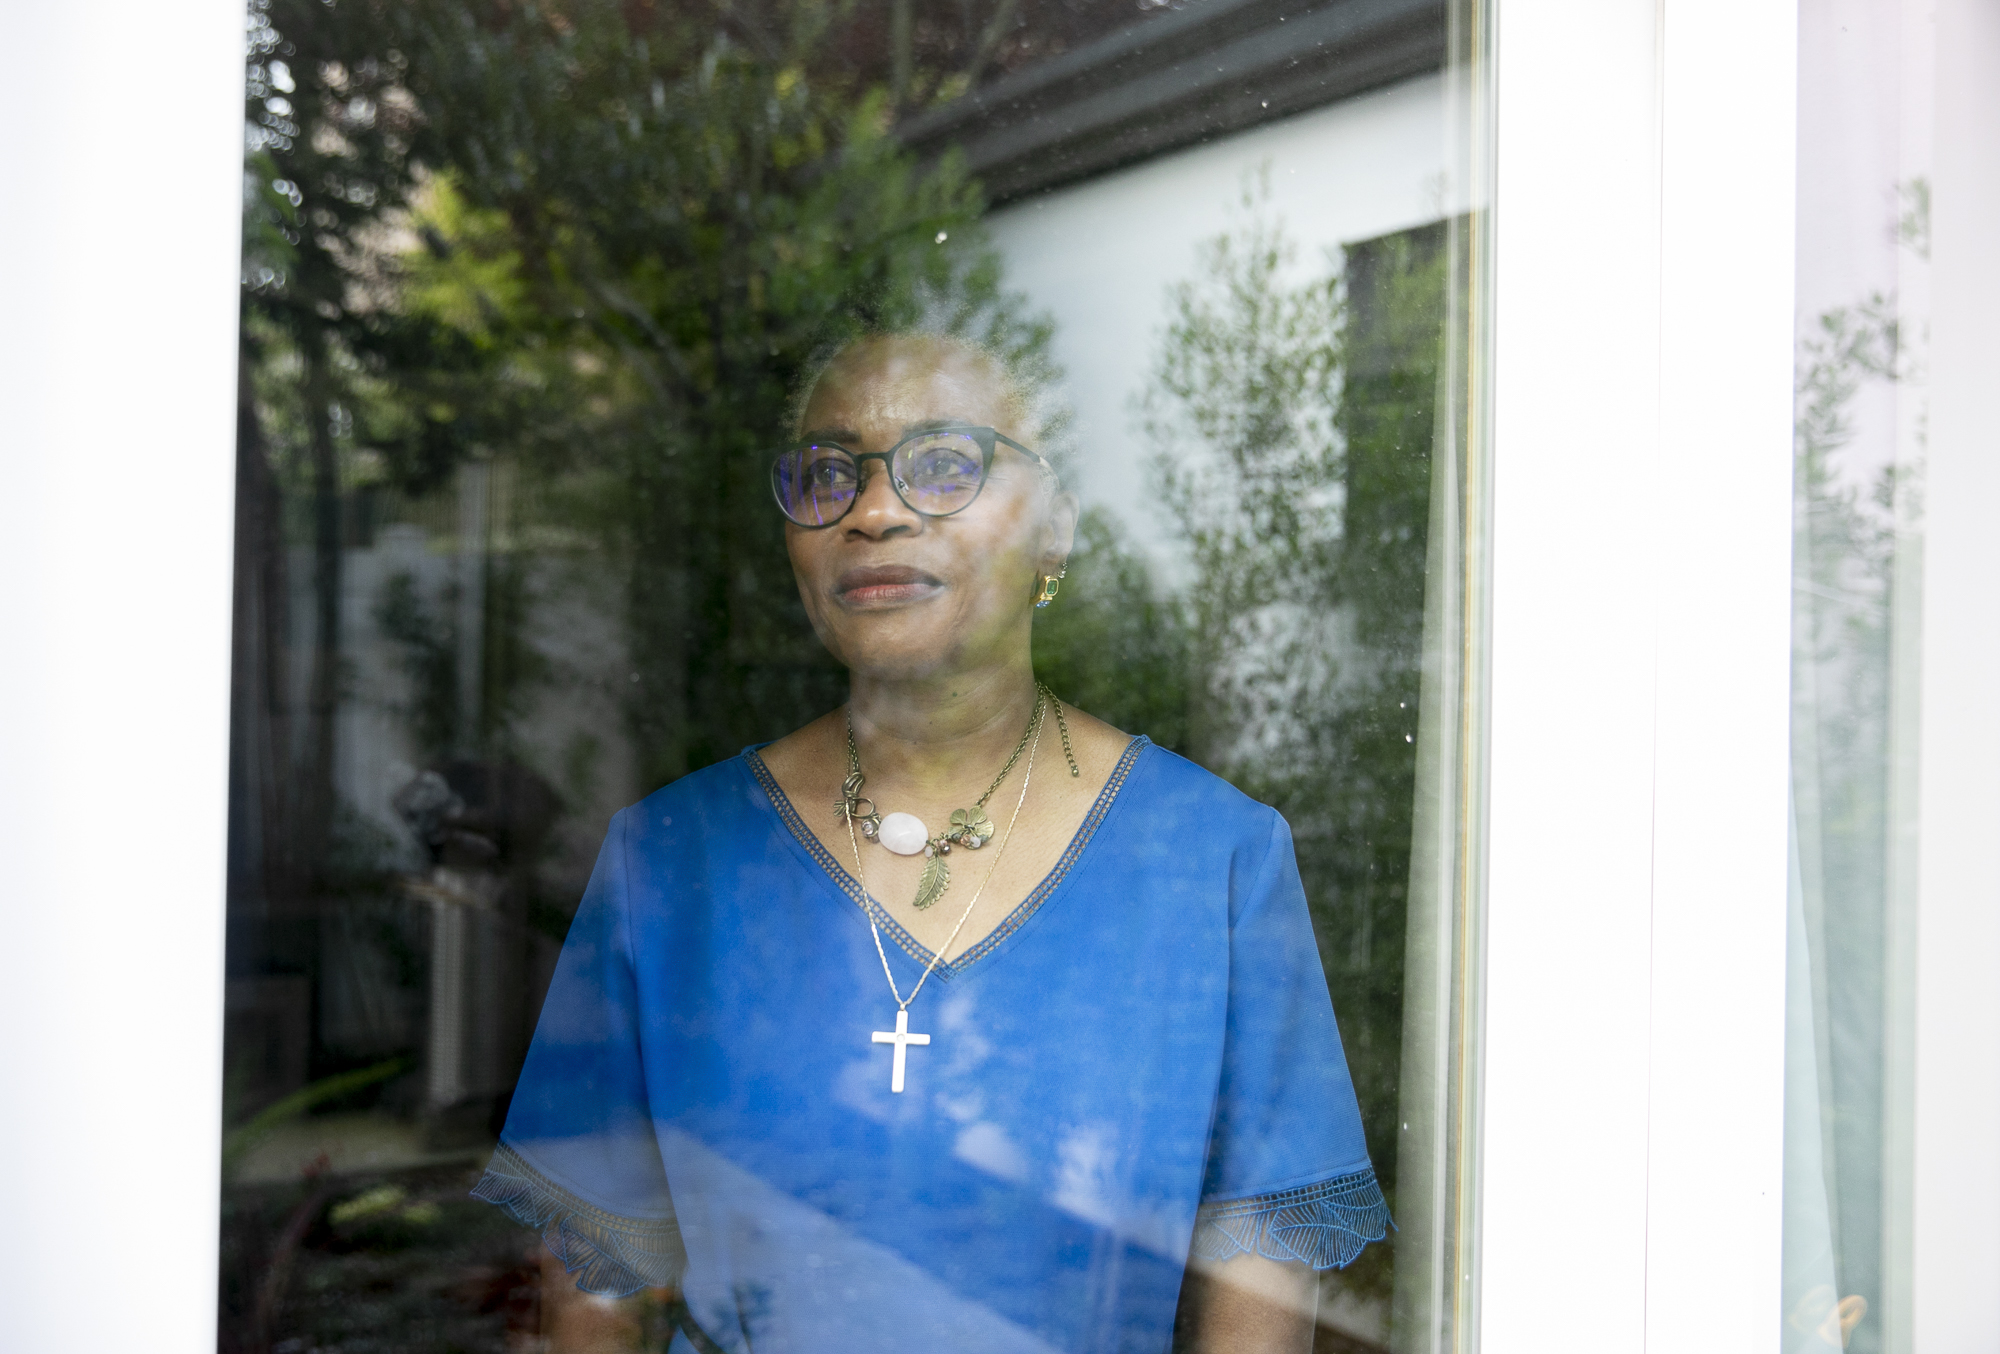 Retired paramedic Jane Smith, who has signed up for the California Health Corps, poses for a portrait at her home in San Francisco. Photo by Anne Wernikoff for CalMatters